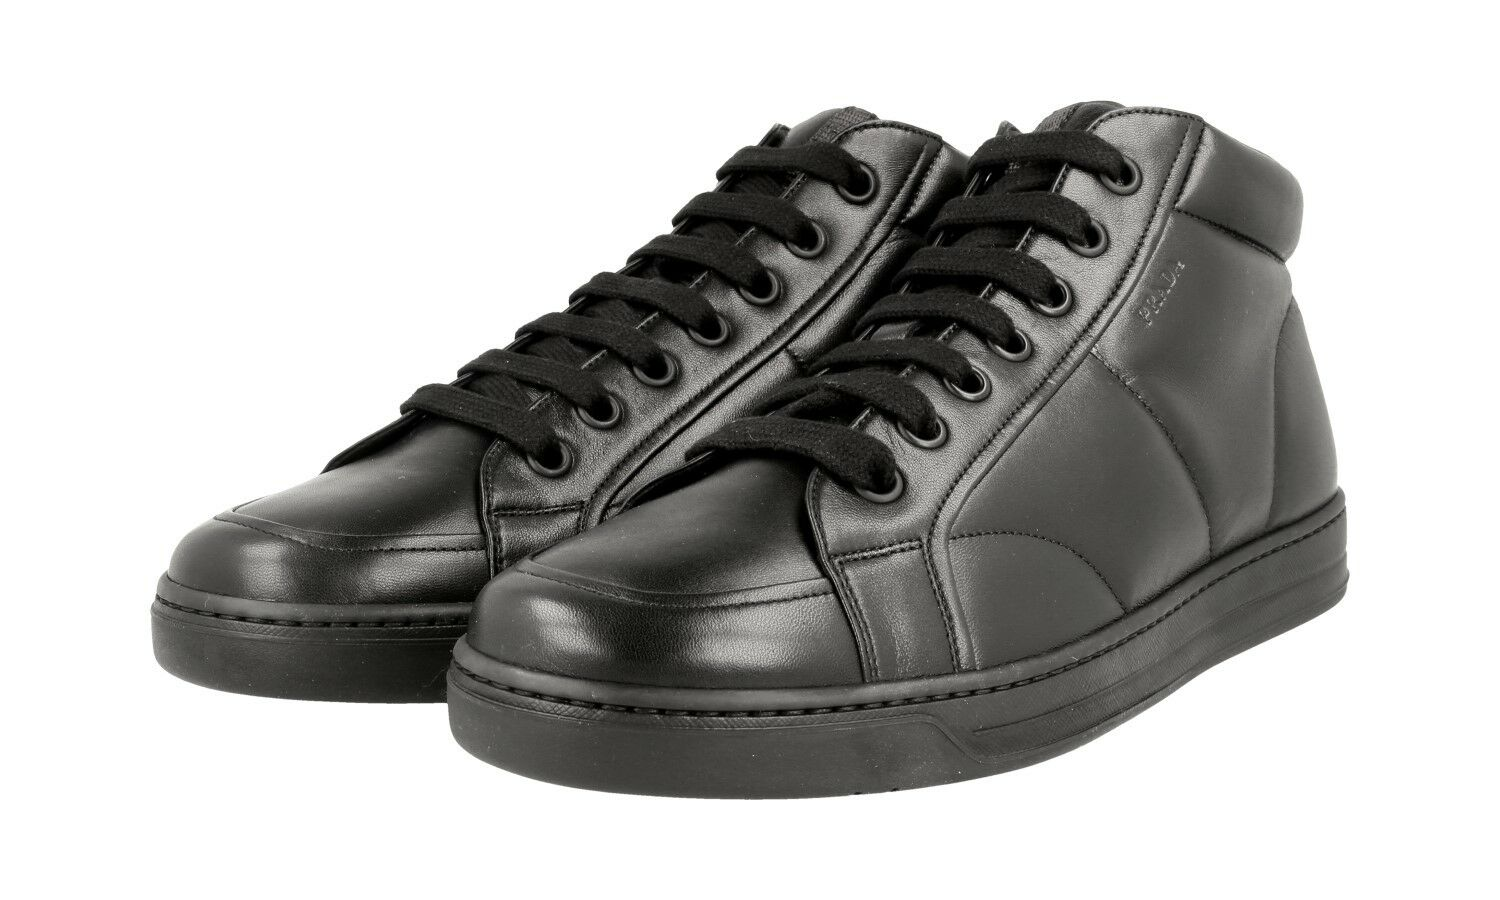 LUXUS PRADA HIGH-TOP SNEAKER SCHUHE 4T2914 black N